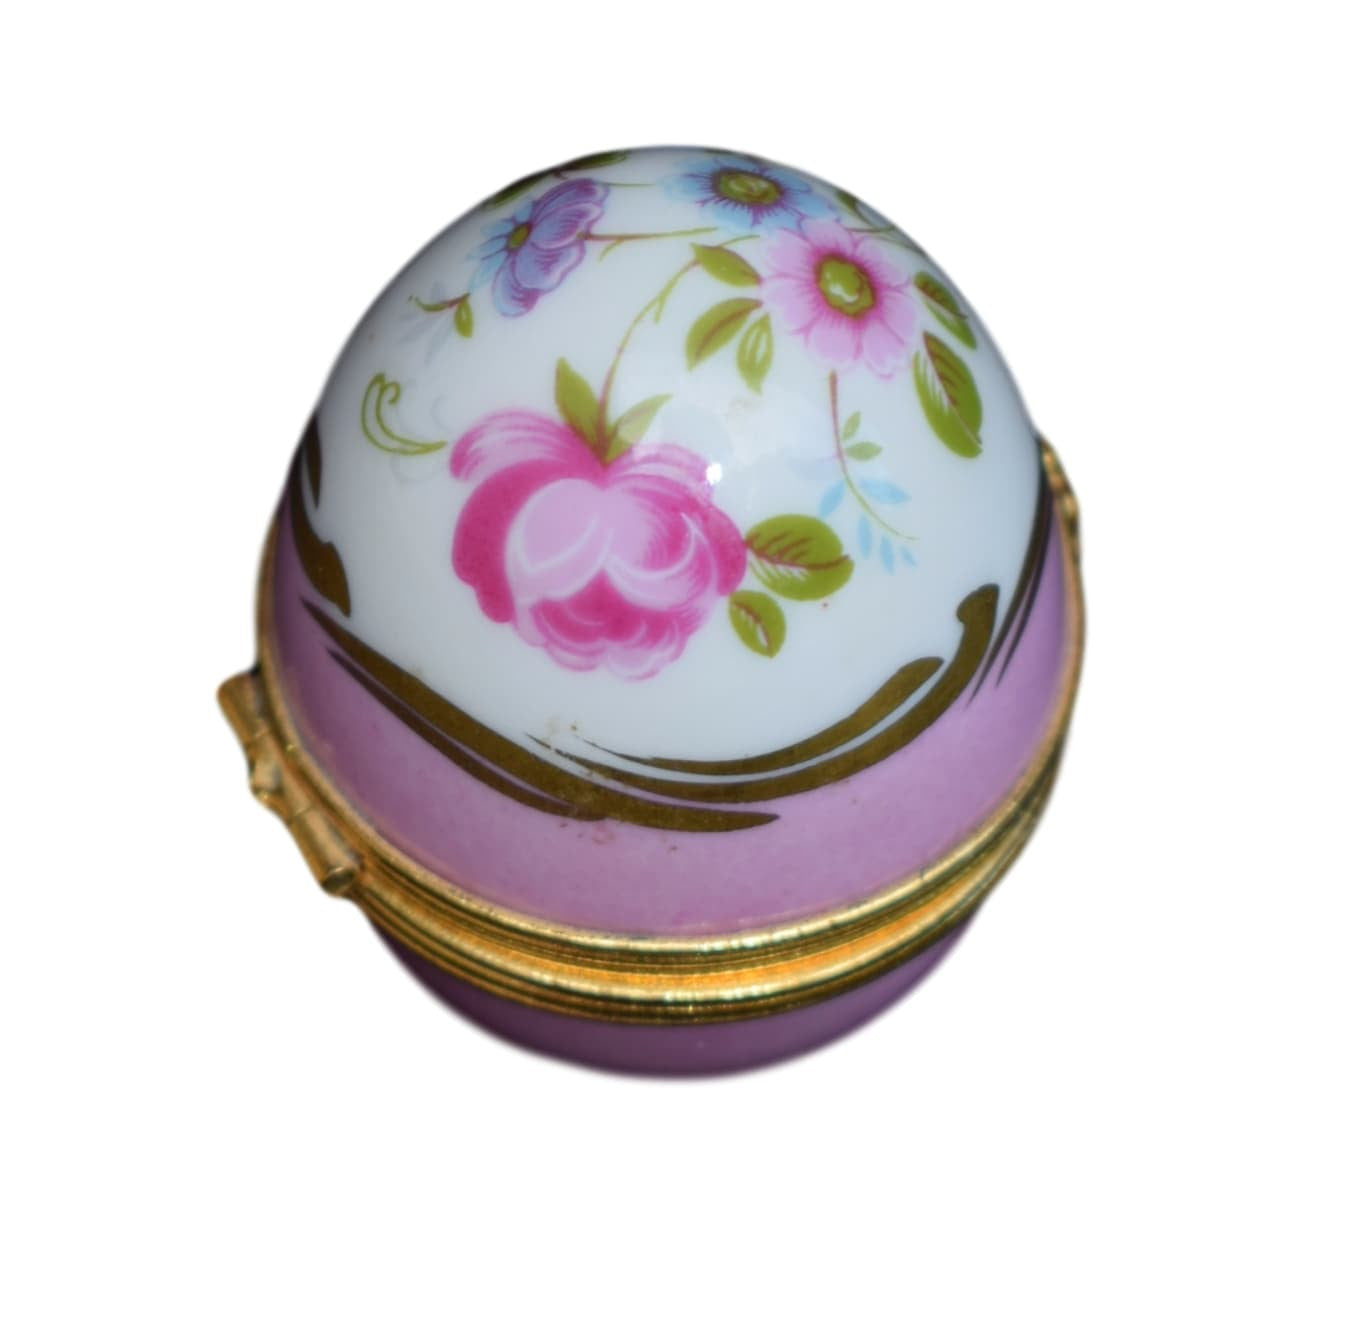 French Vintage Hand Painted Limoges Porcelain Egg Pill Box - Charmantiques